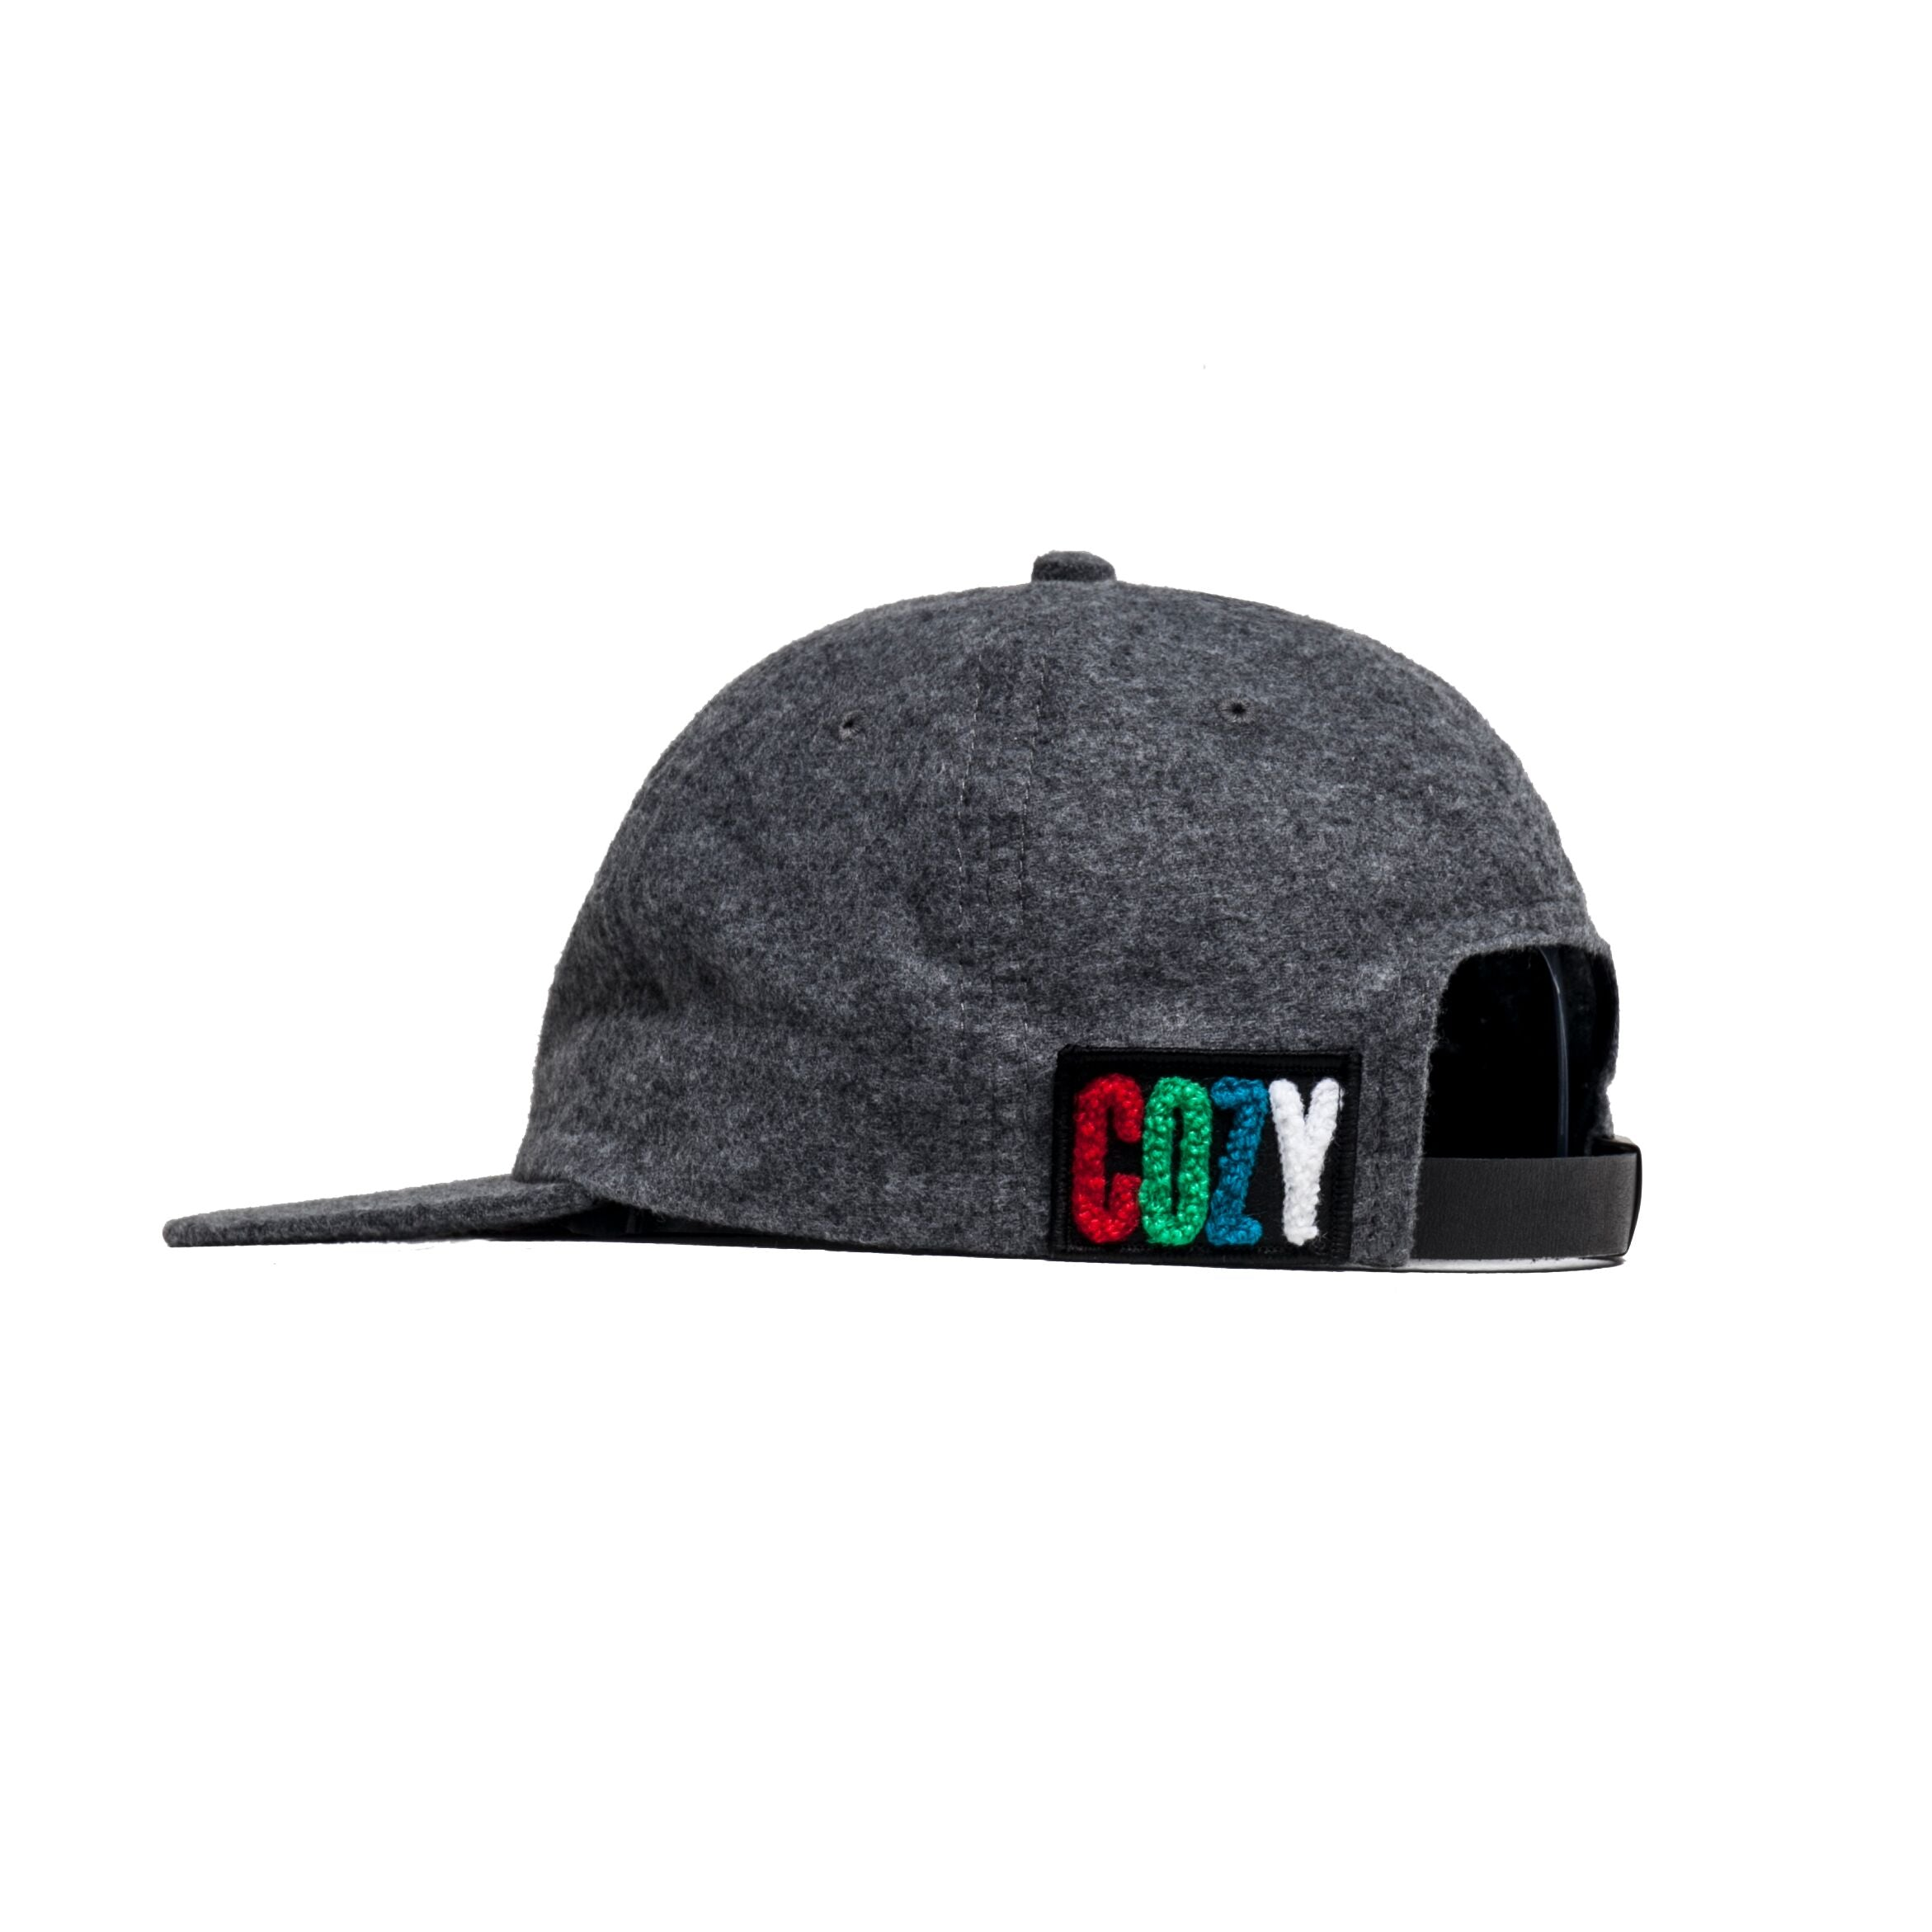 Encino Hat (Charcoal)